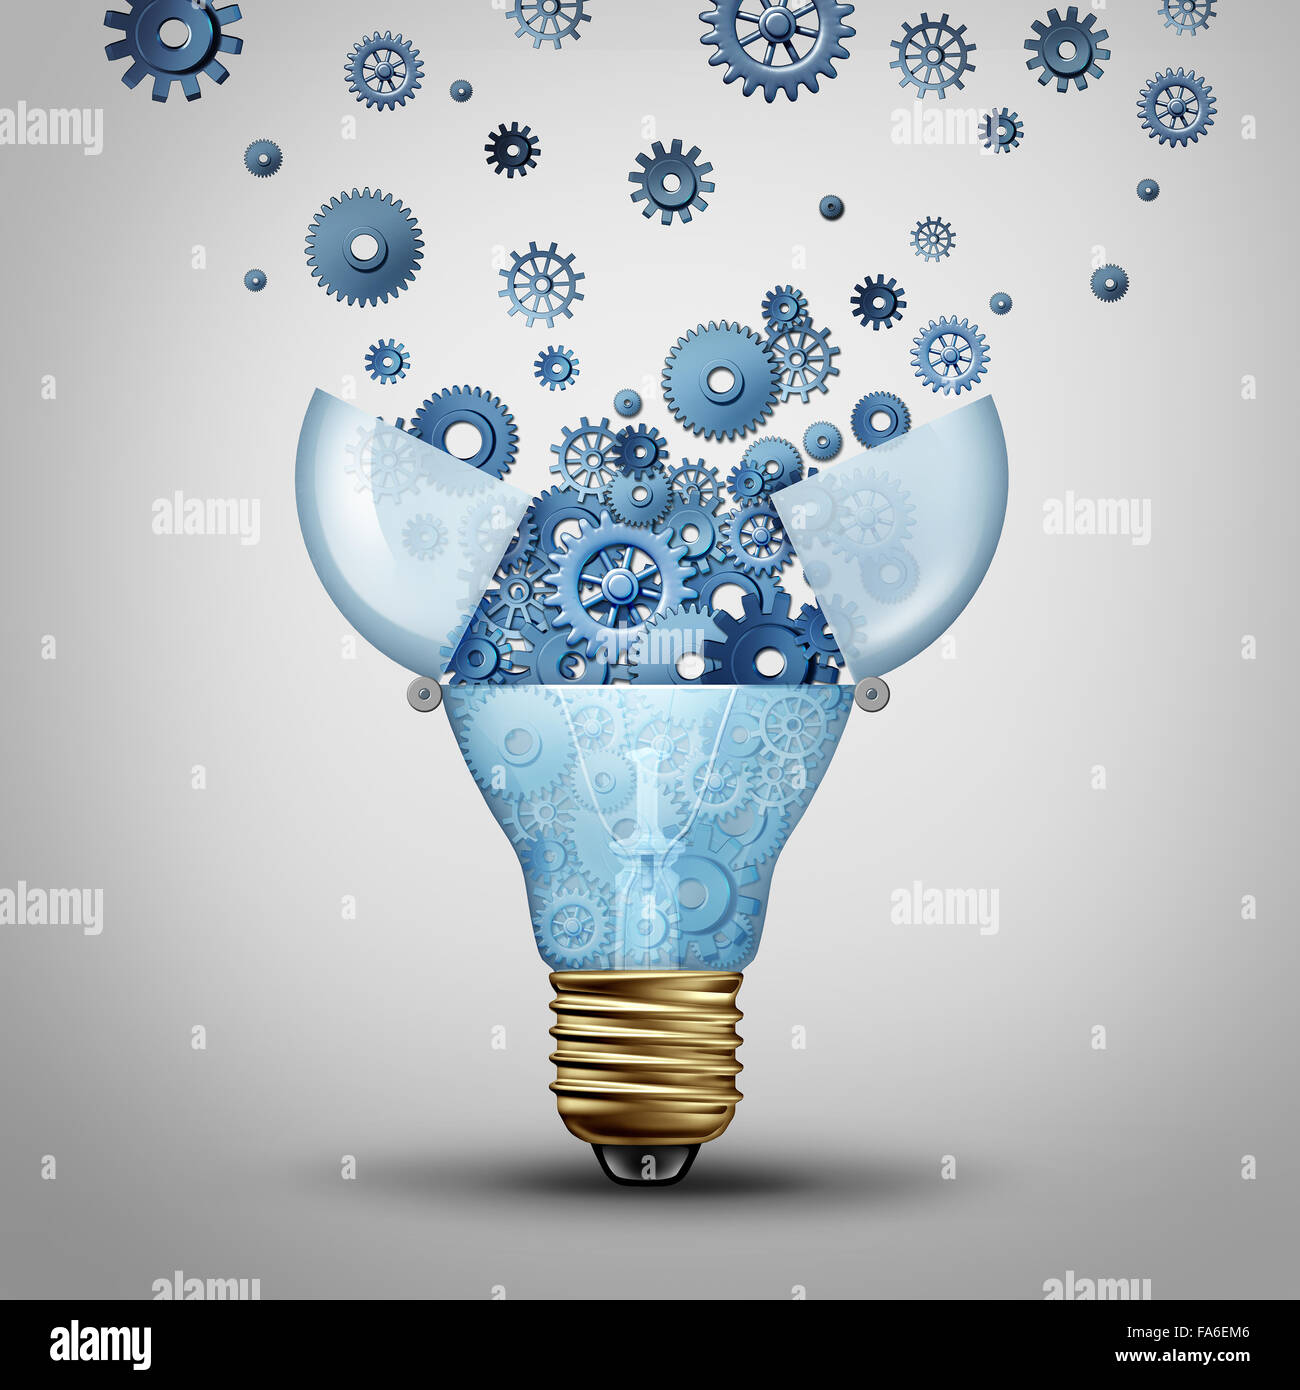 Creative communication solution and clever marketing ideas through distribution as an open lightbulb with a group - Stock Image